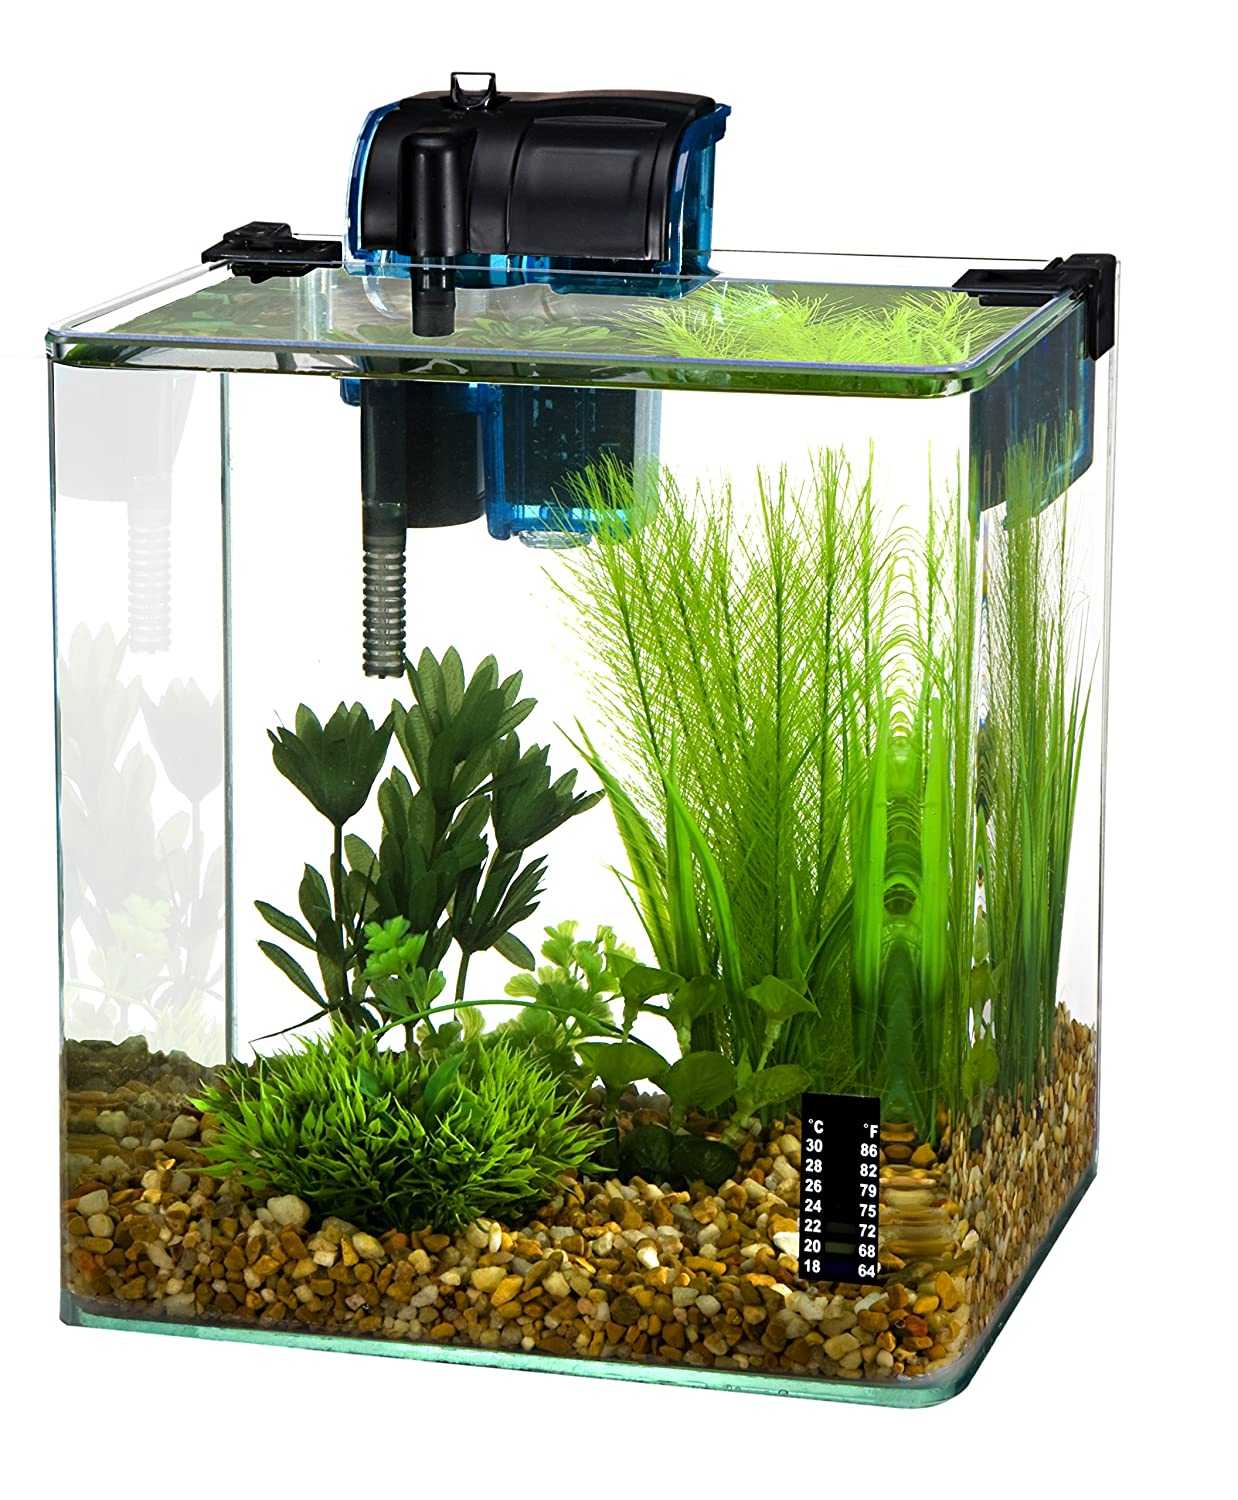 Amazon Com Penn Plax Vertex Aquarium Kit For Fish And Shrimp With Filter Thermometer Desktop Size   Gallon Aquariums Pet Supplies